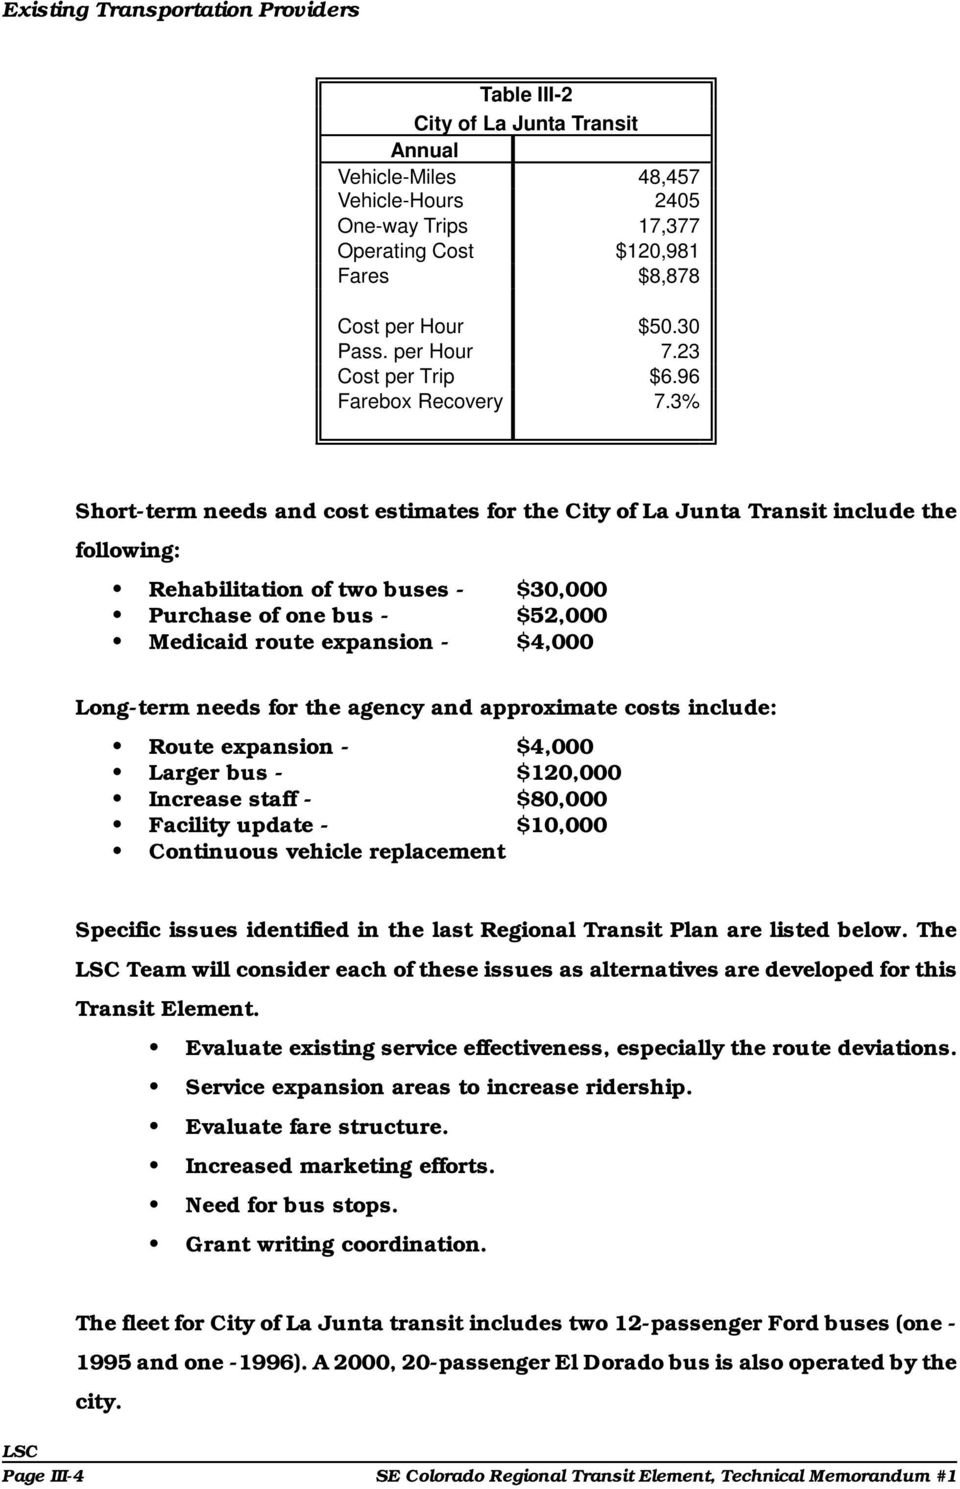 3% Short-term needs and cost estimates for the City of La Junta Transit include the following: Rehabilitation of two buses - $30,000 Purchase of one bus - $52,000 Medicaid route expansion - $4,000